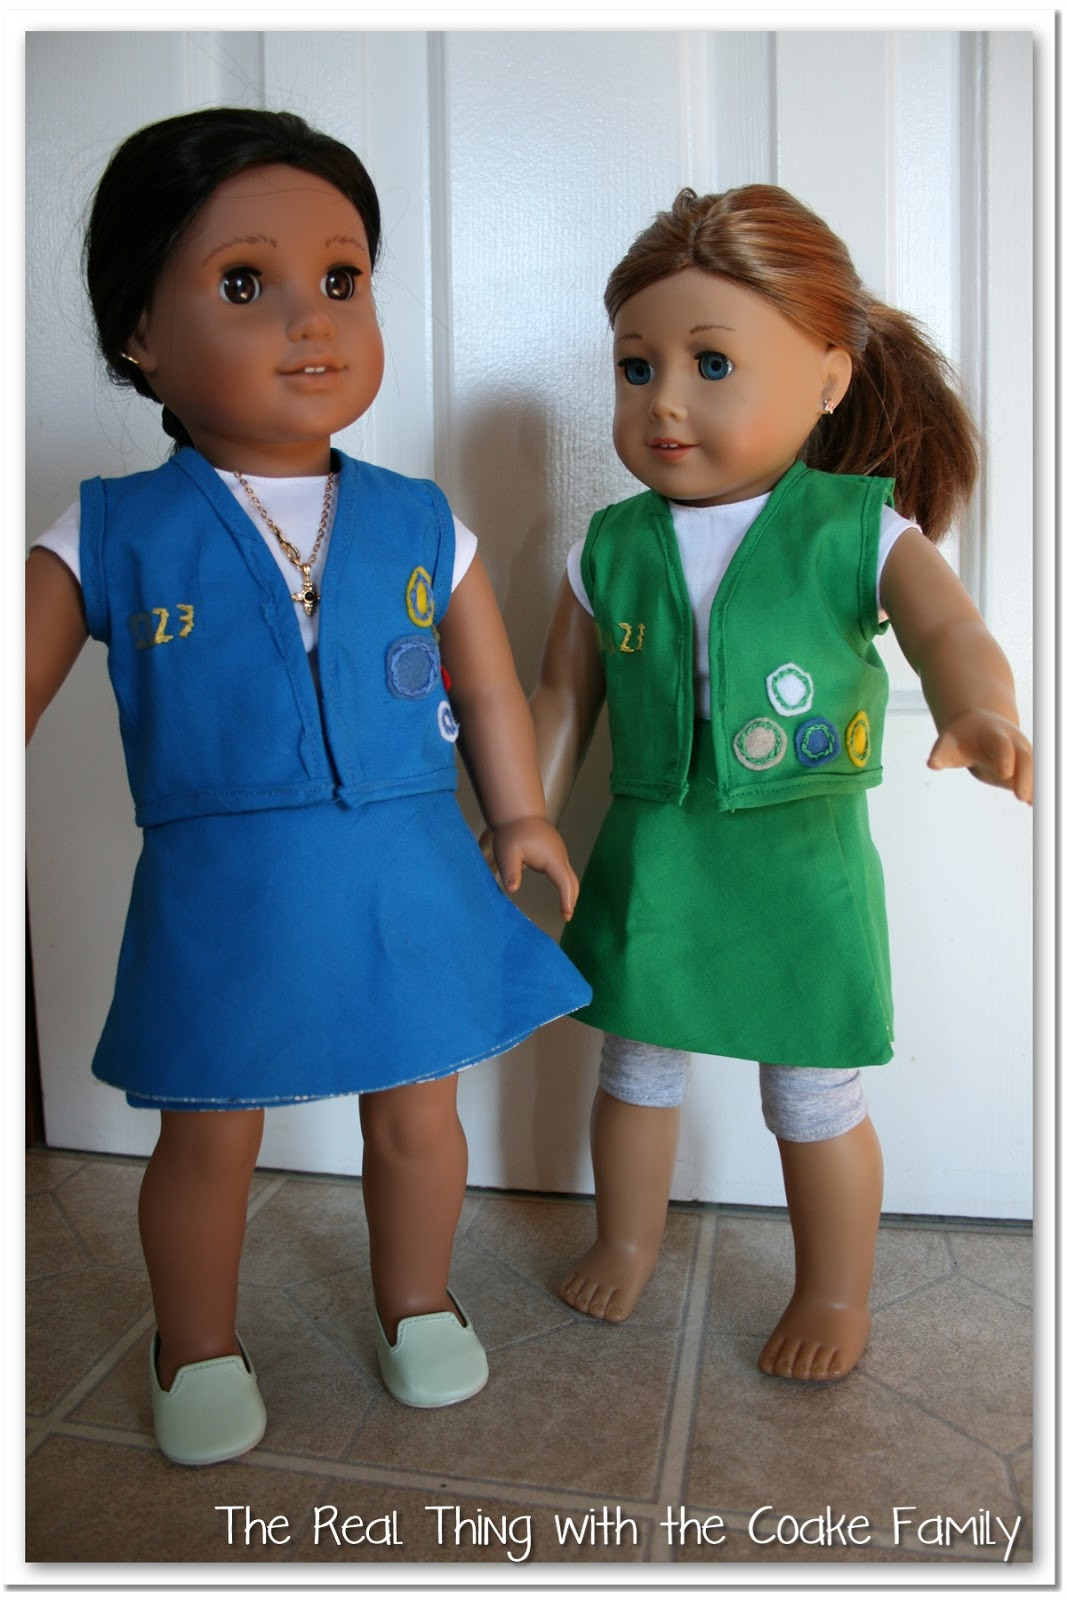 Best Of Free American Girl Doll Patterns Girl Scout Uniform Free American Girl Doll Patterns Of Top 44 Pics Free American Girl Doll Patterns